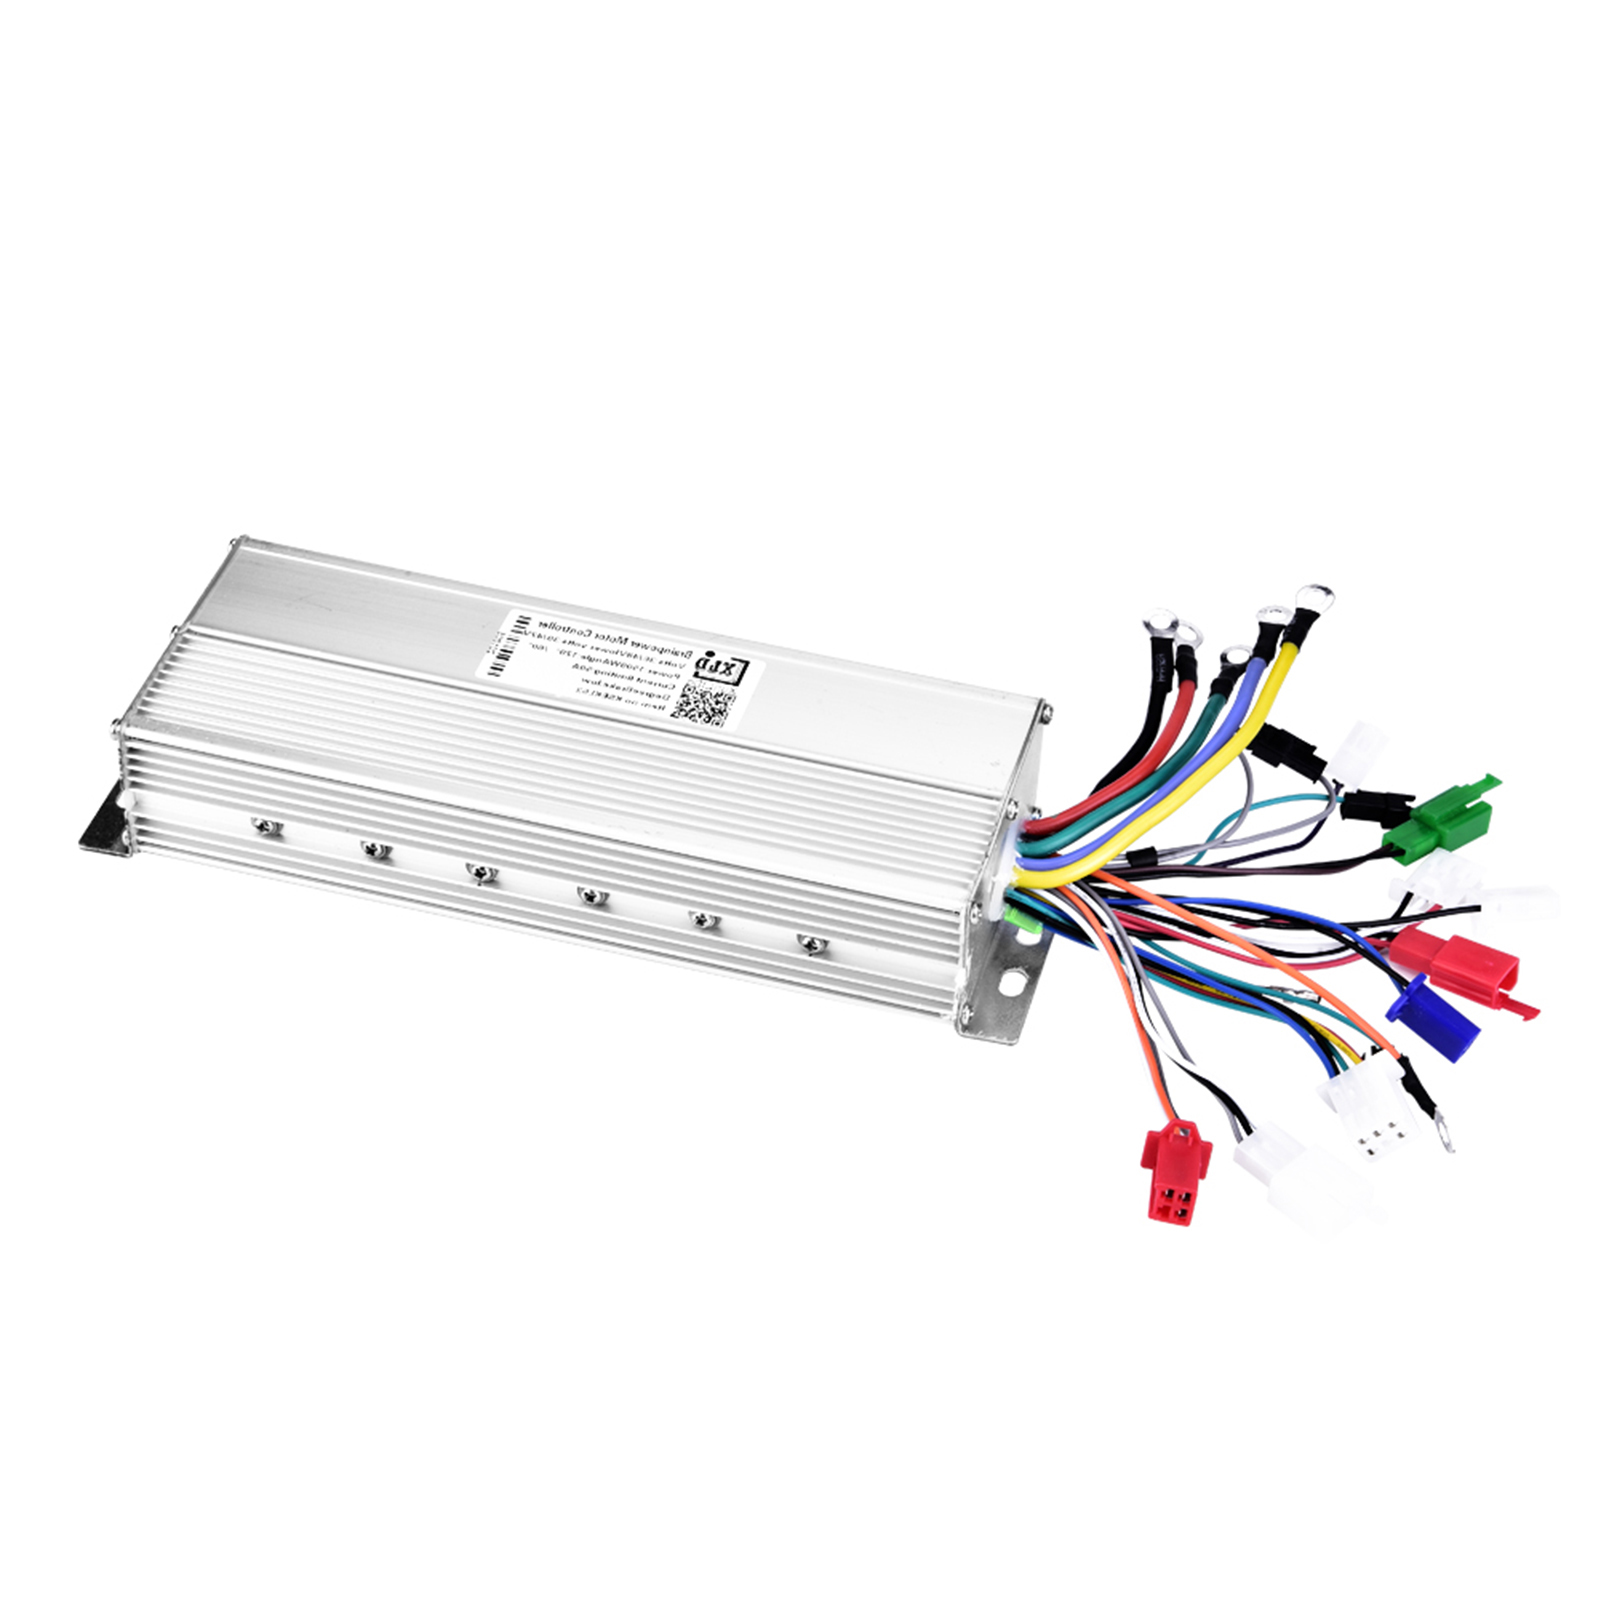 48-60V-1500W-Electric-Bicycle-E-bike-Scooter-Brushless-DC-Motor-Speed-Controller thumbnail 16